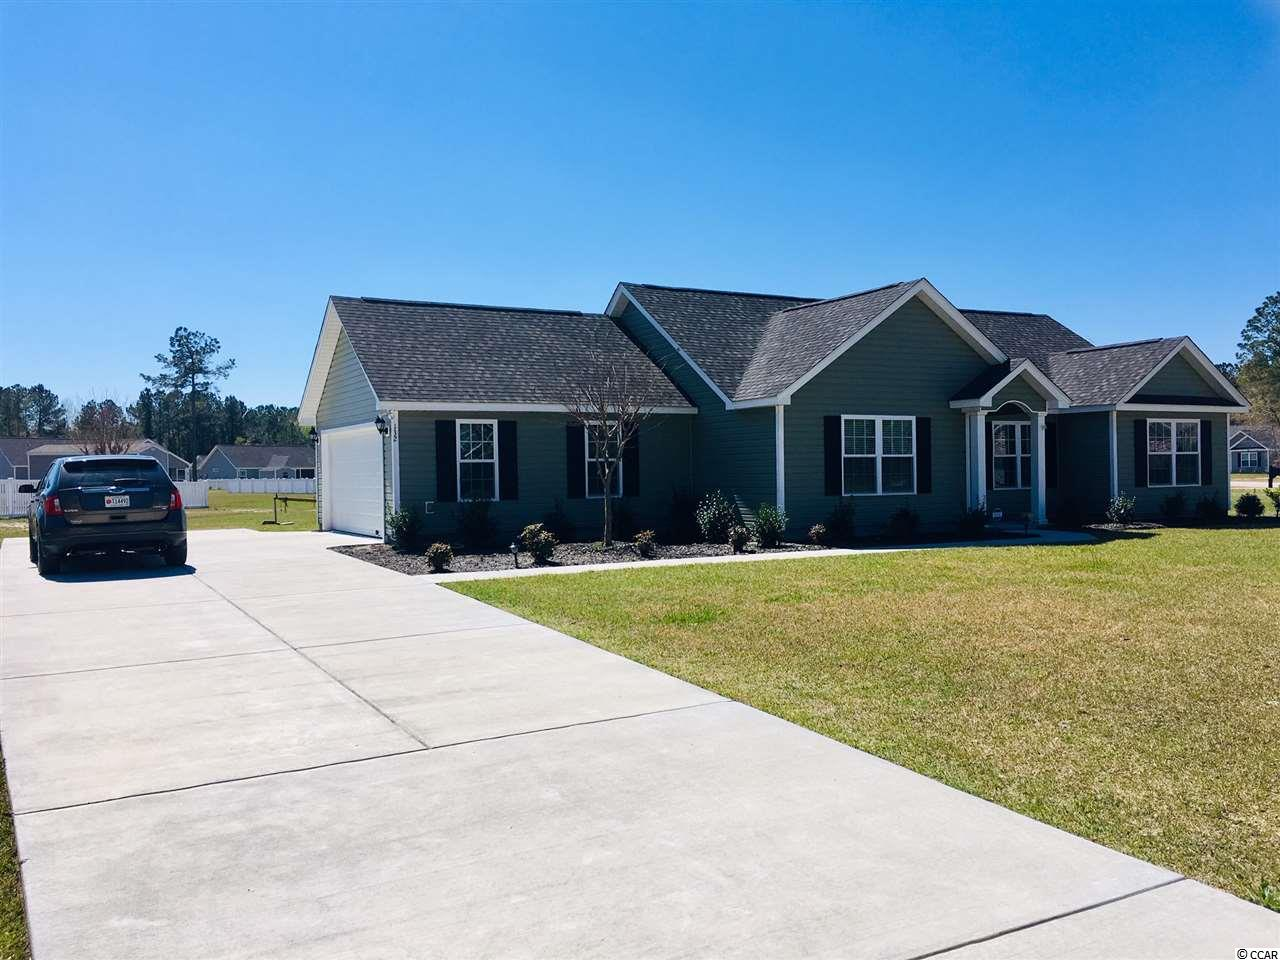 Private Gated River-Access Community offering a private boat ramp into the Great Pee Dee River. A new home sitting on a large lot with a boat and RV friendly POA. Move in ready with no punch list items. Close to several zip codes and two county seats. Country living outside the hustle and bustle of traffic with gated protection. The Augustus II Plan has a split floor plan. Vaulted ceiling in the living room and an open dining space with lots of natural light. The Master Bedroom has a large Master Bath with a walk-in closet. The Master Bedroom also has a tray ceiling with a ceiling fan. There are many extra closets sharing an abundance of storage space to include a floored attic above the 2 car garage. Upgraded Shaw Duratru vinyl flooring throughout the home. No Carpet! An extra breakfast eating area nook facing sunrise. The kitchen has a pantry and the laundry room is close by. The screen porch overlooks the back yard and also greets the sunrise. An open air patio shares the back yard for outdoor sunning and grilling. This is a quality built home by Beverly Homes. Easy to see and easy to understand the value in the home and the subdivision. This is a perfect starter home, second home or retirement home. FURNISHED! The Dining Room table, the sideboard, and the piano do not convey.